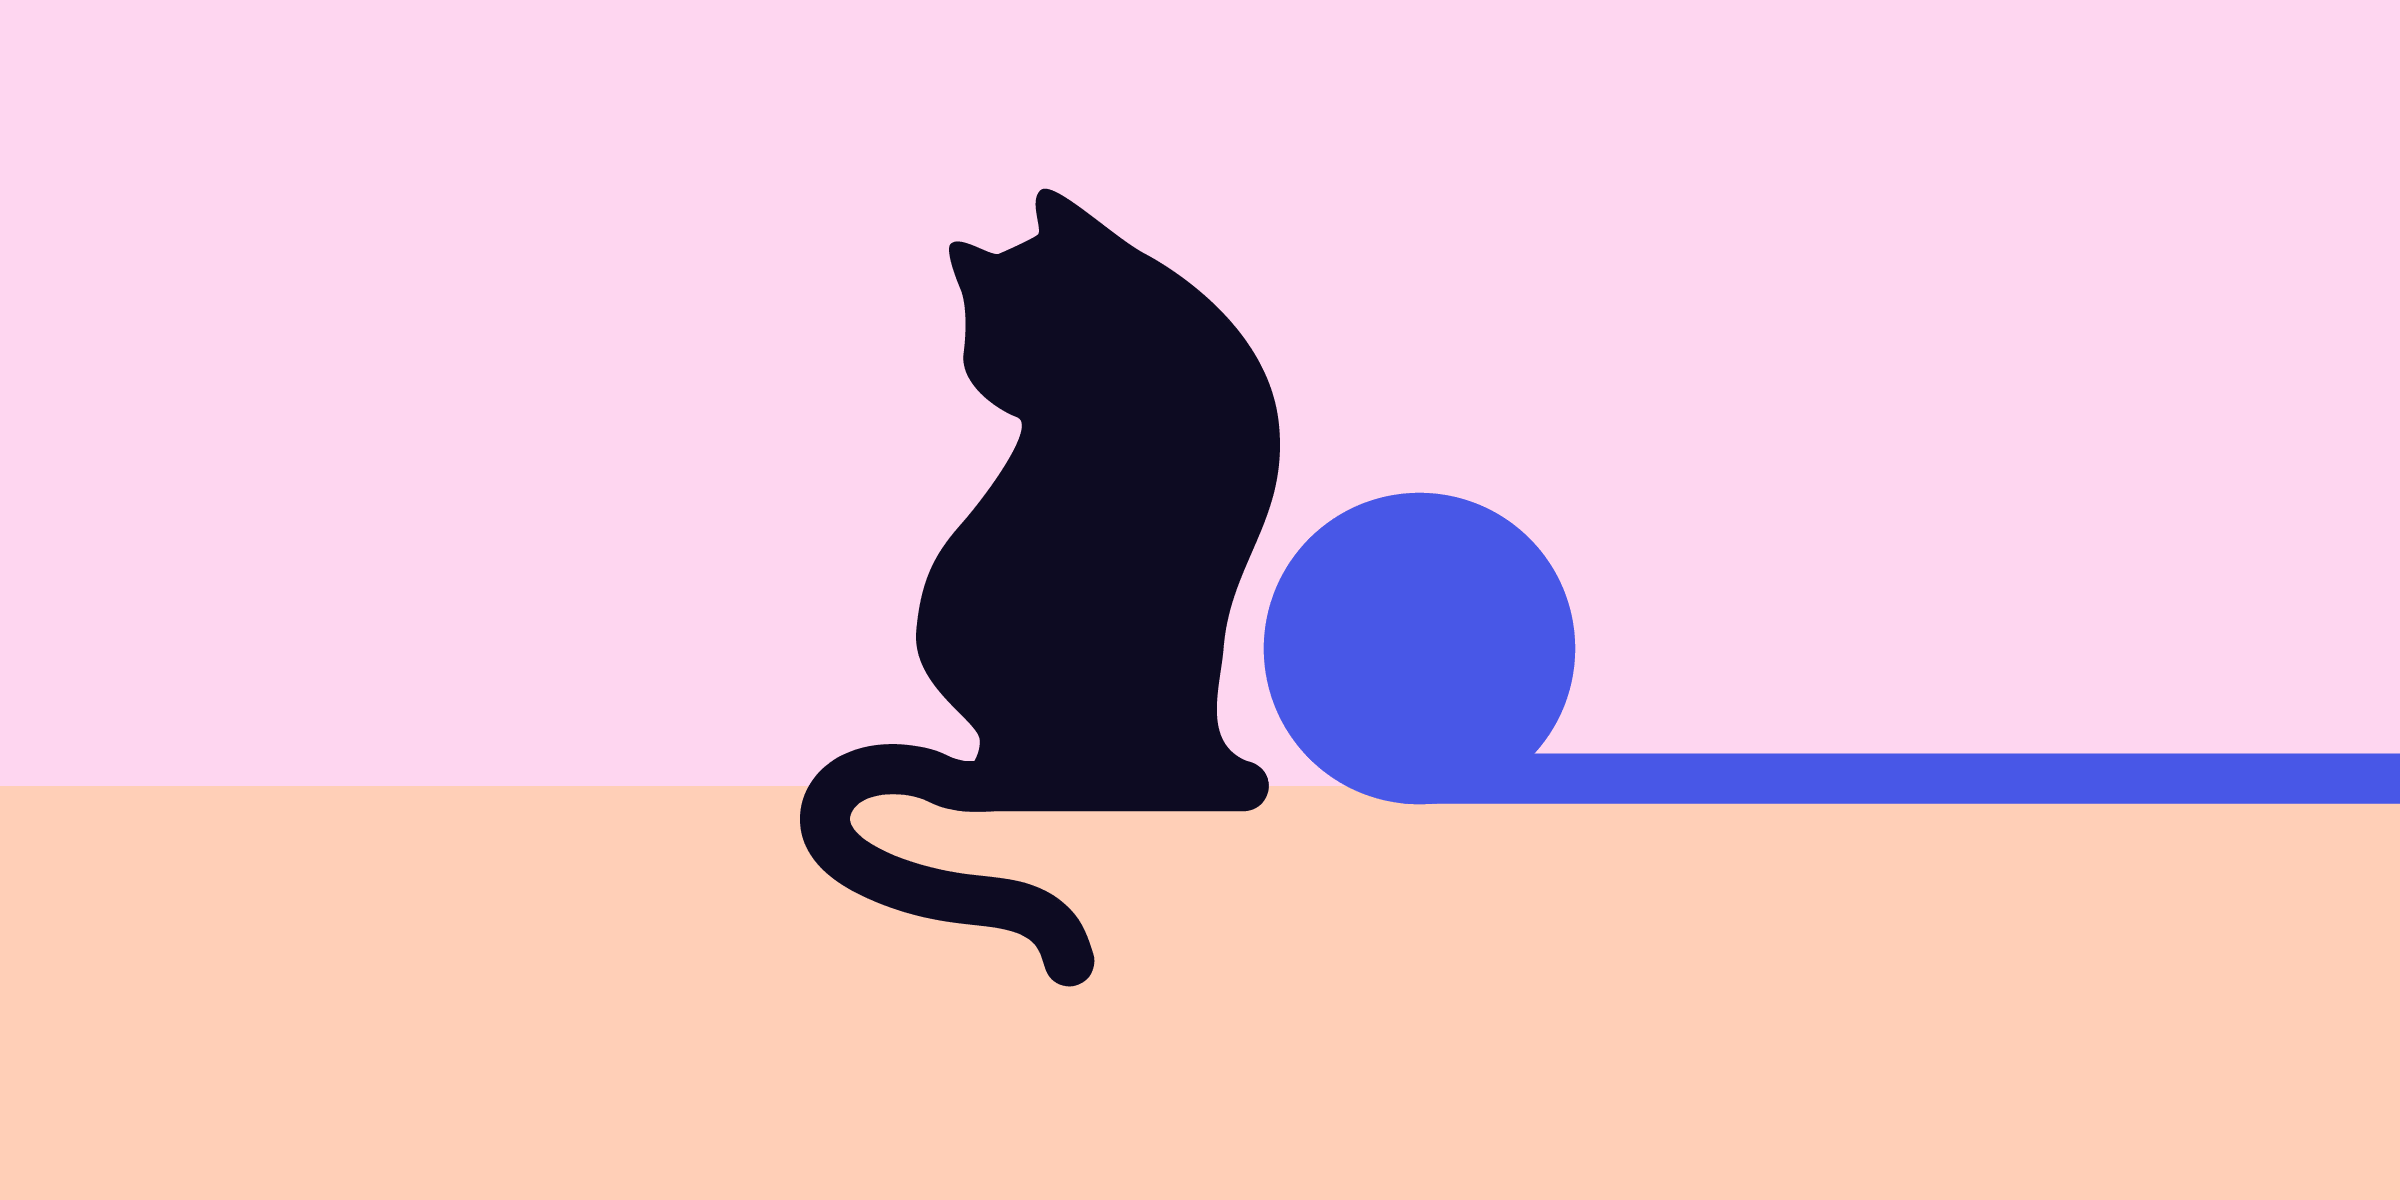 An illustrated black cat sitting on a blue surface looking over its shoulder